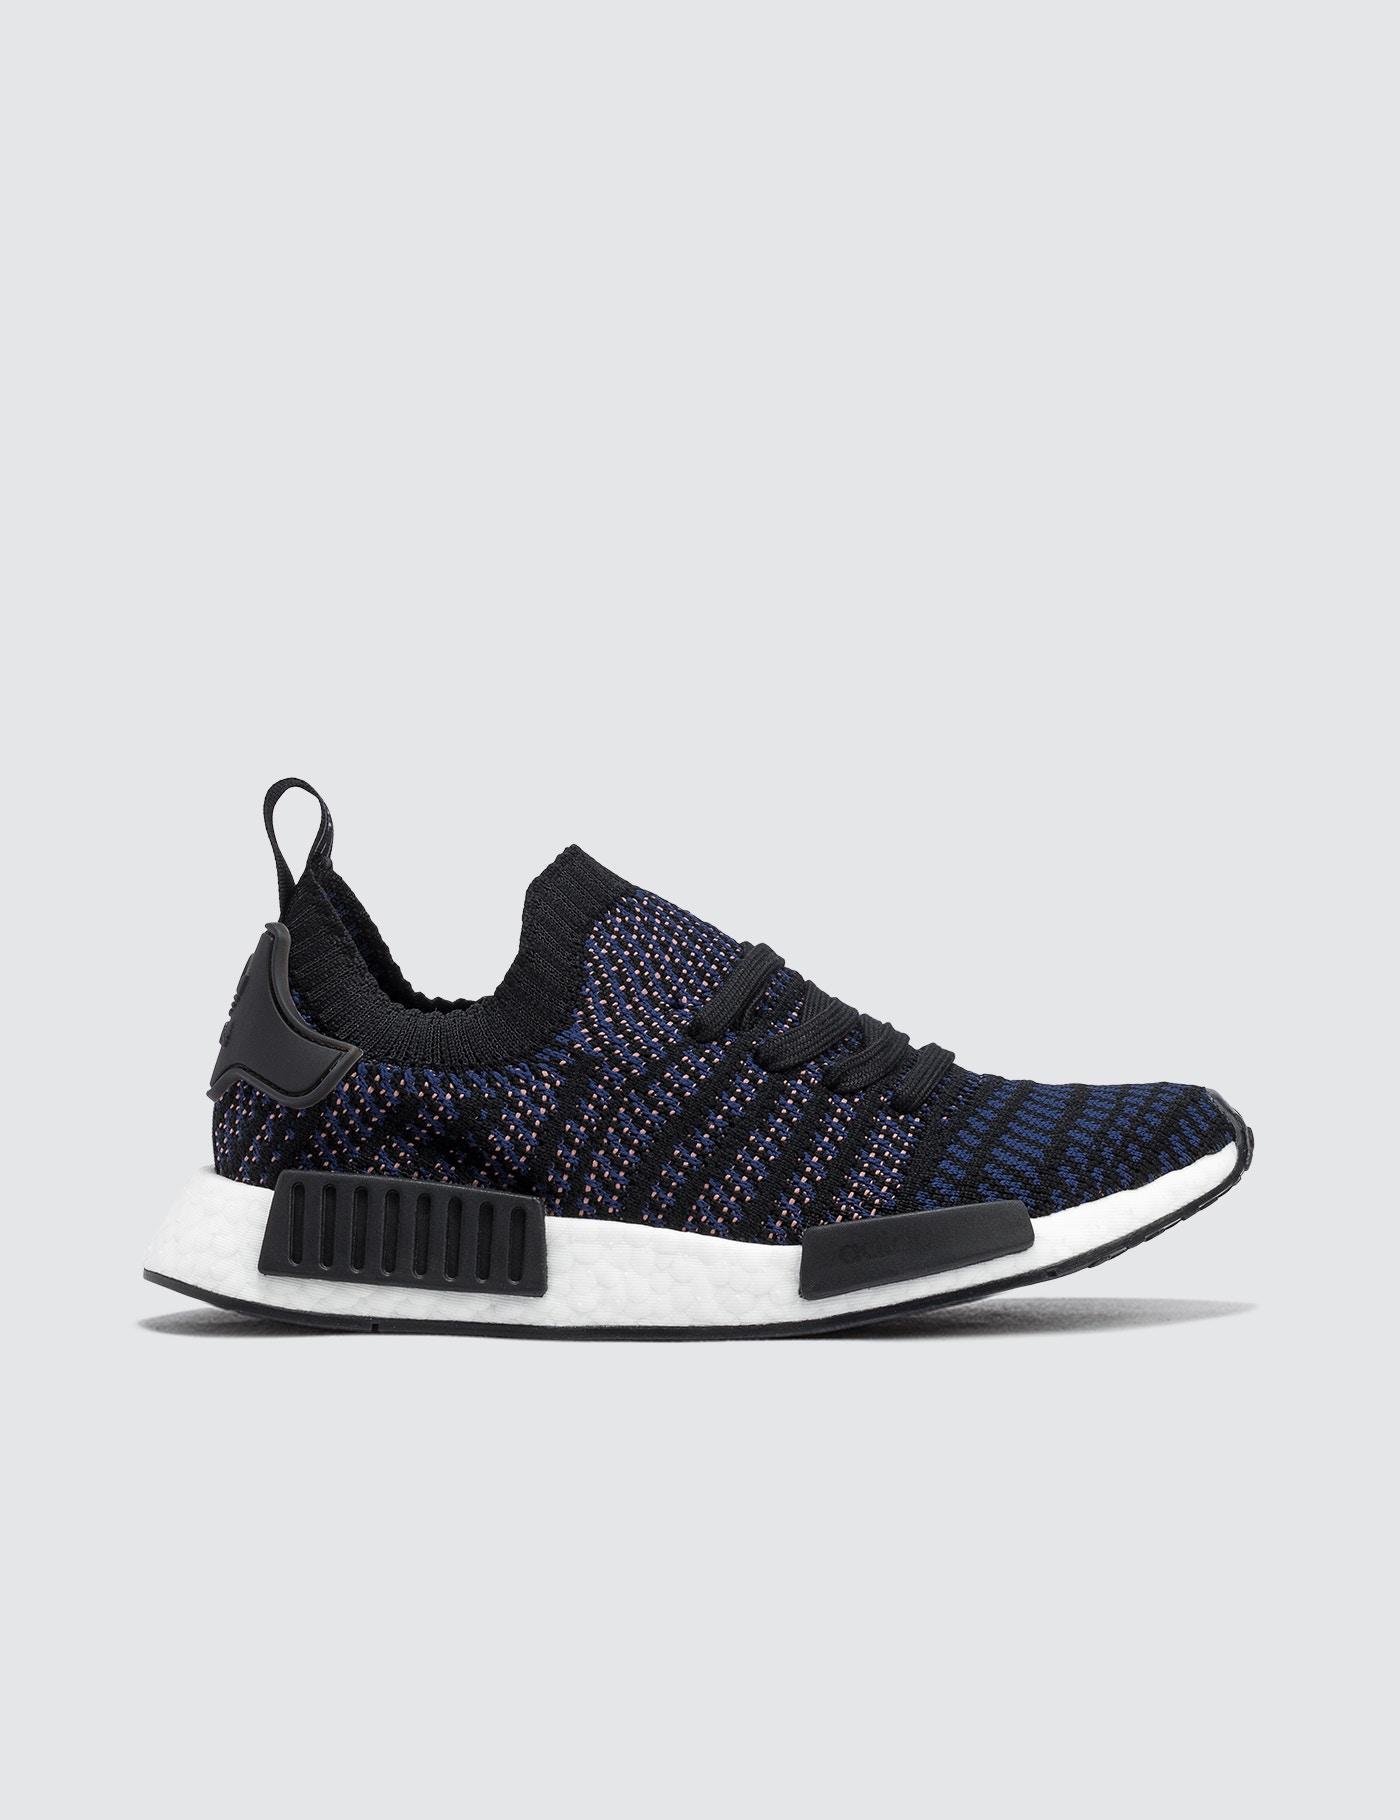 547aa2576bcfe Buy Original Adidas Originals NMD R1 Stlt PK W at Indonesia